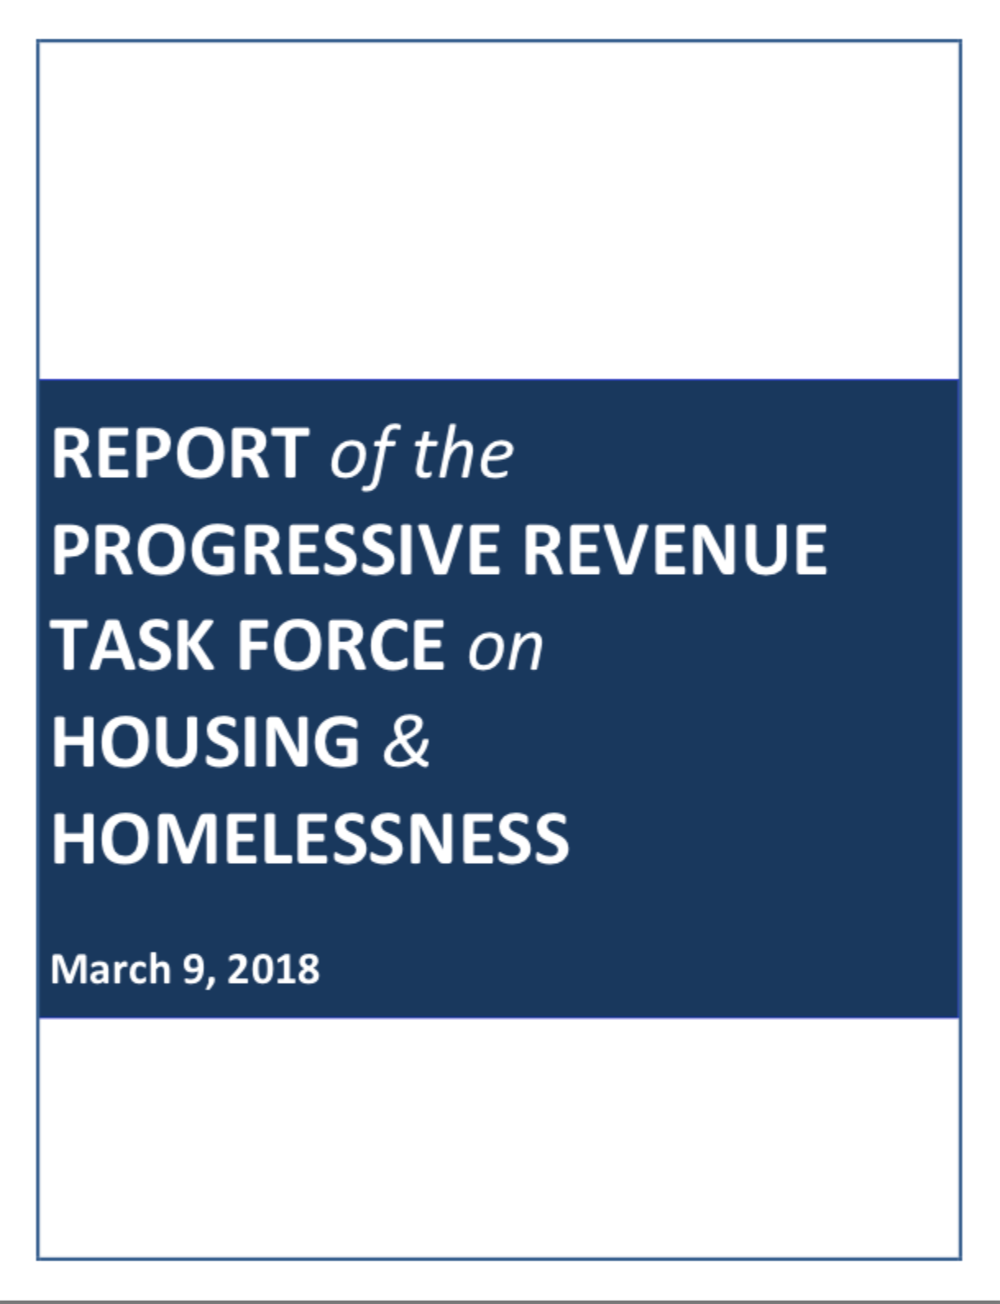 Click on the image to read the final report of the Progressive Revenue Task Force.